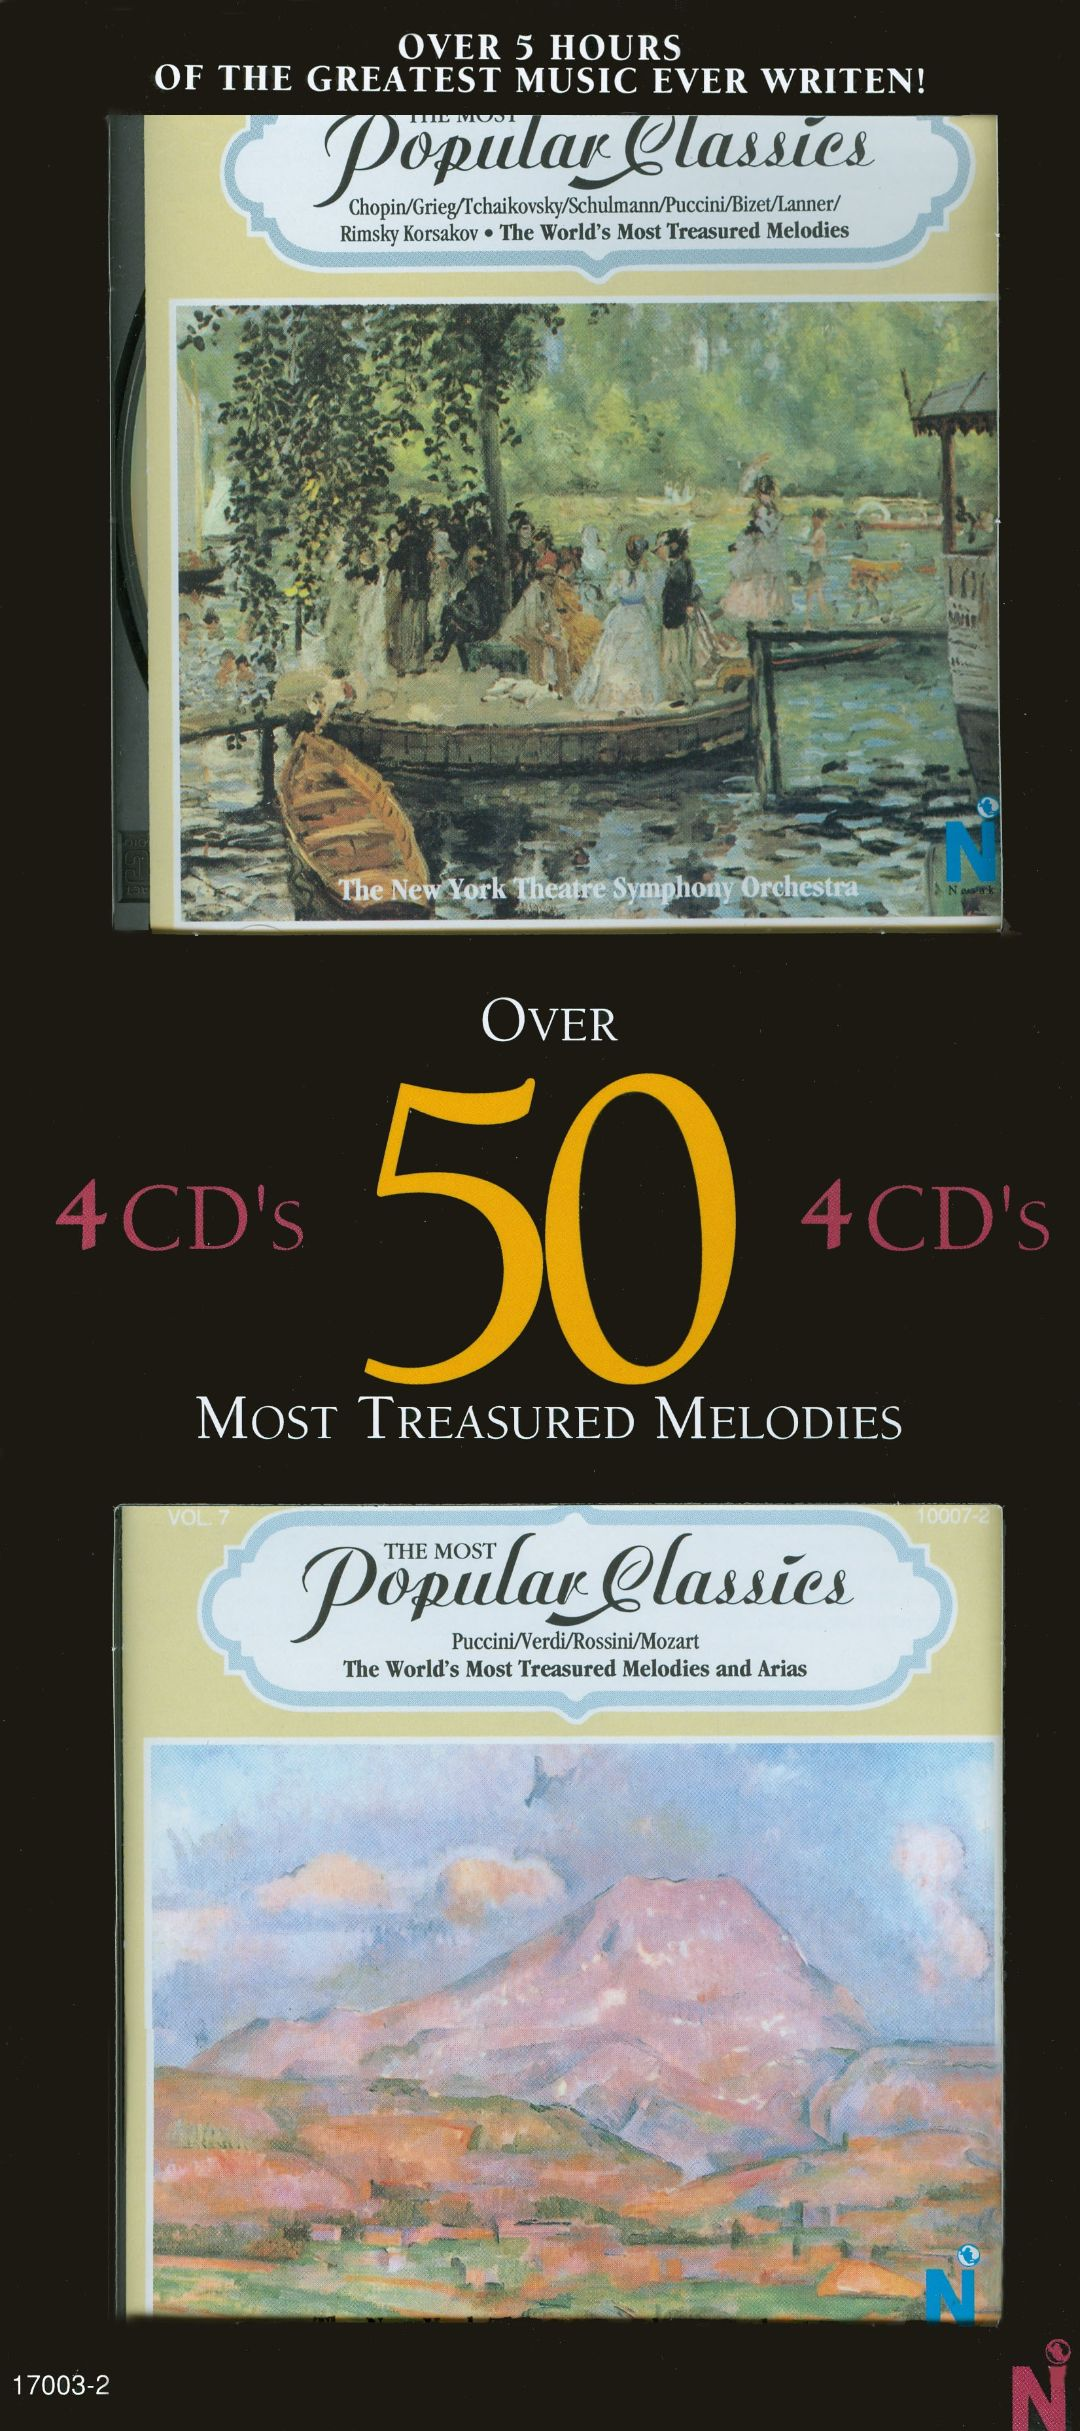 Over 50 Most Treasured Melodies